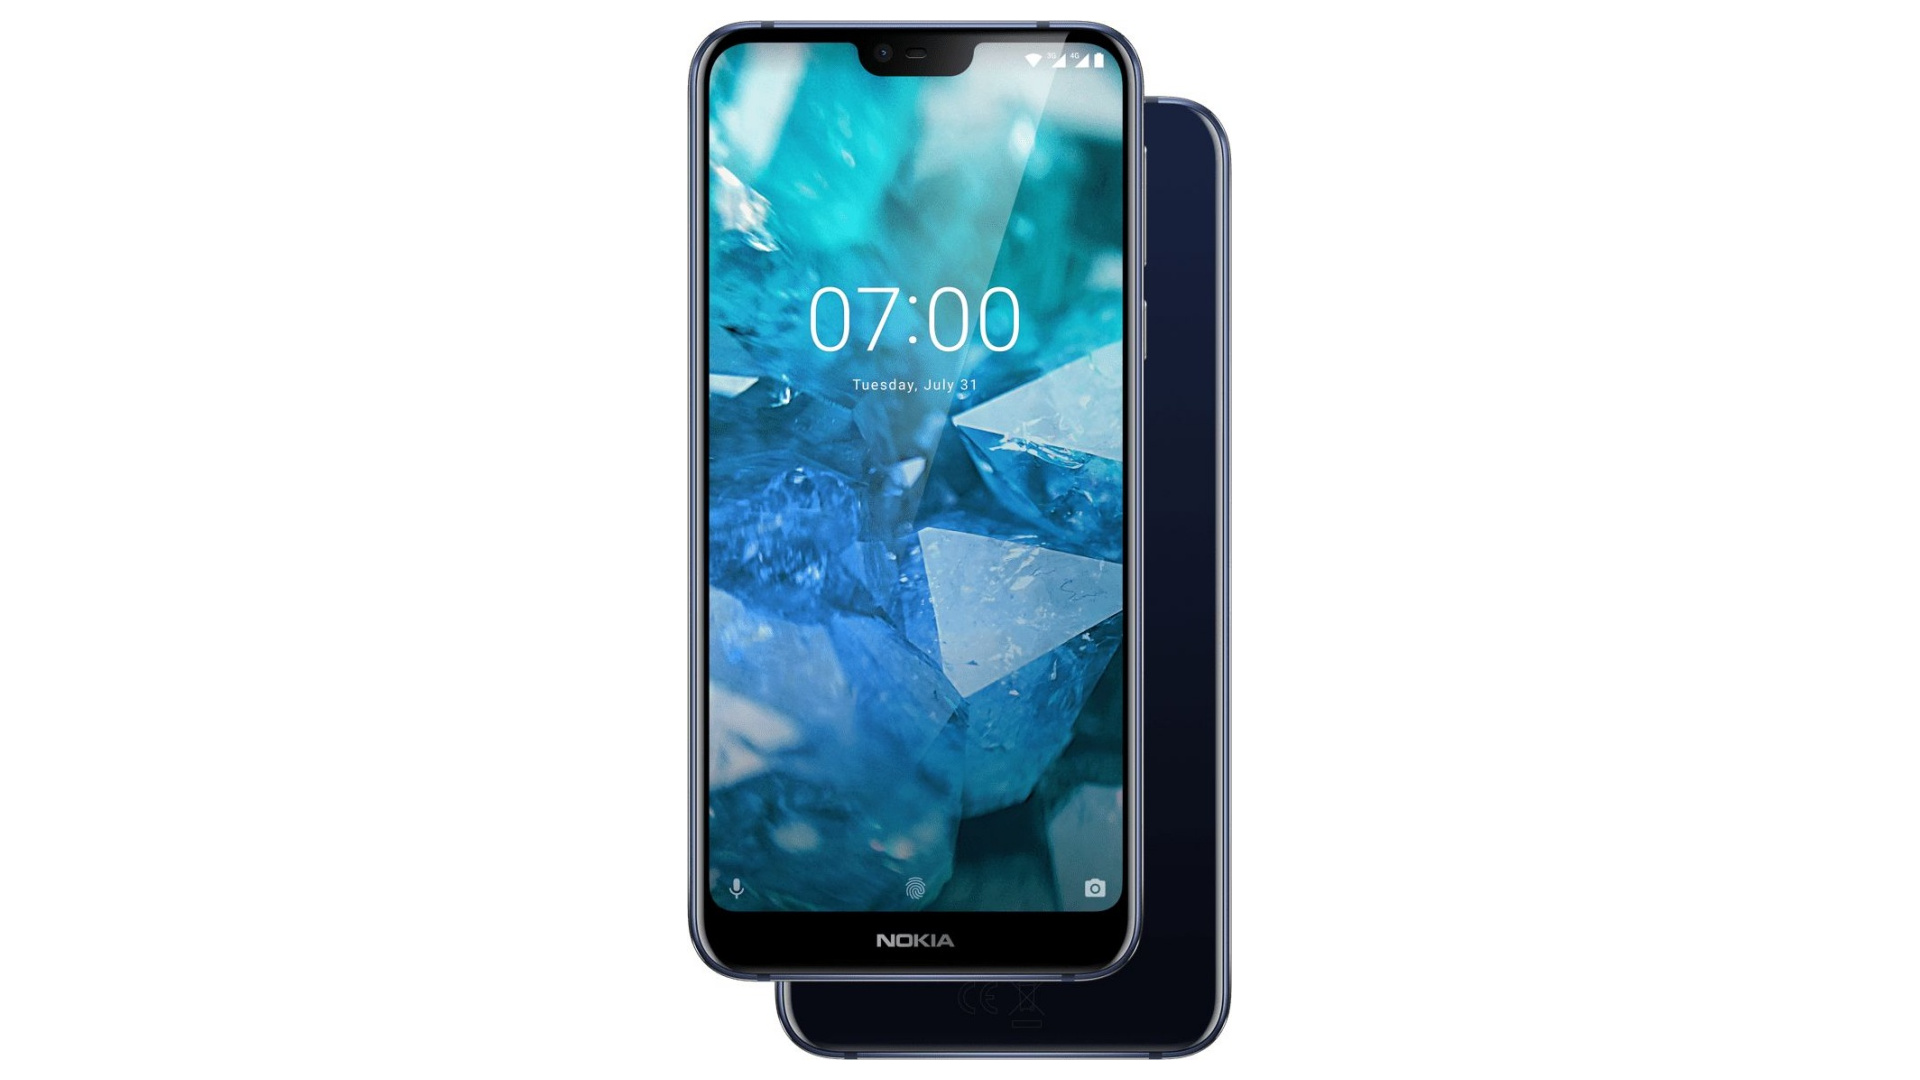 Nokia 7.1 launched: Price and specifications